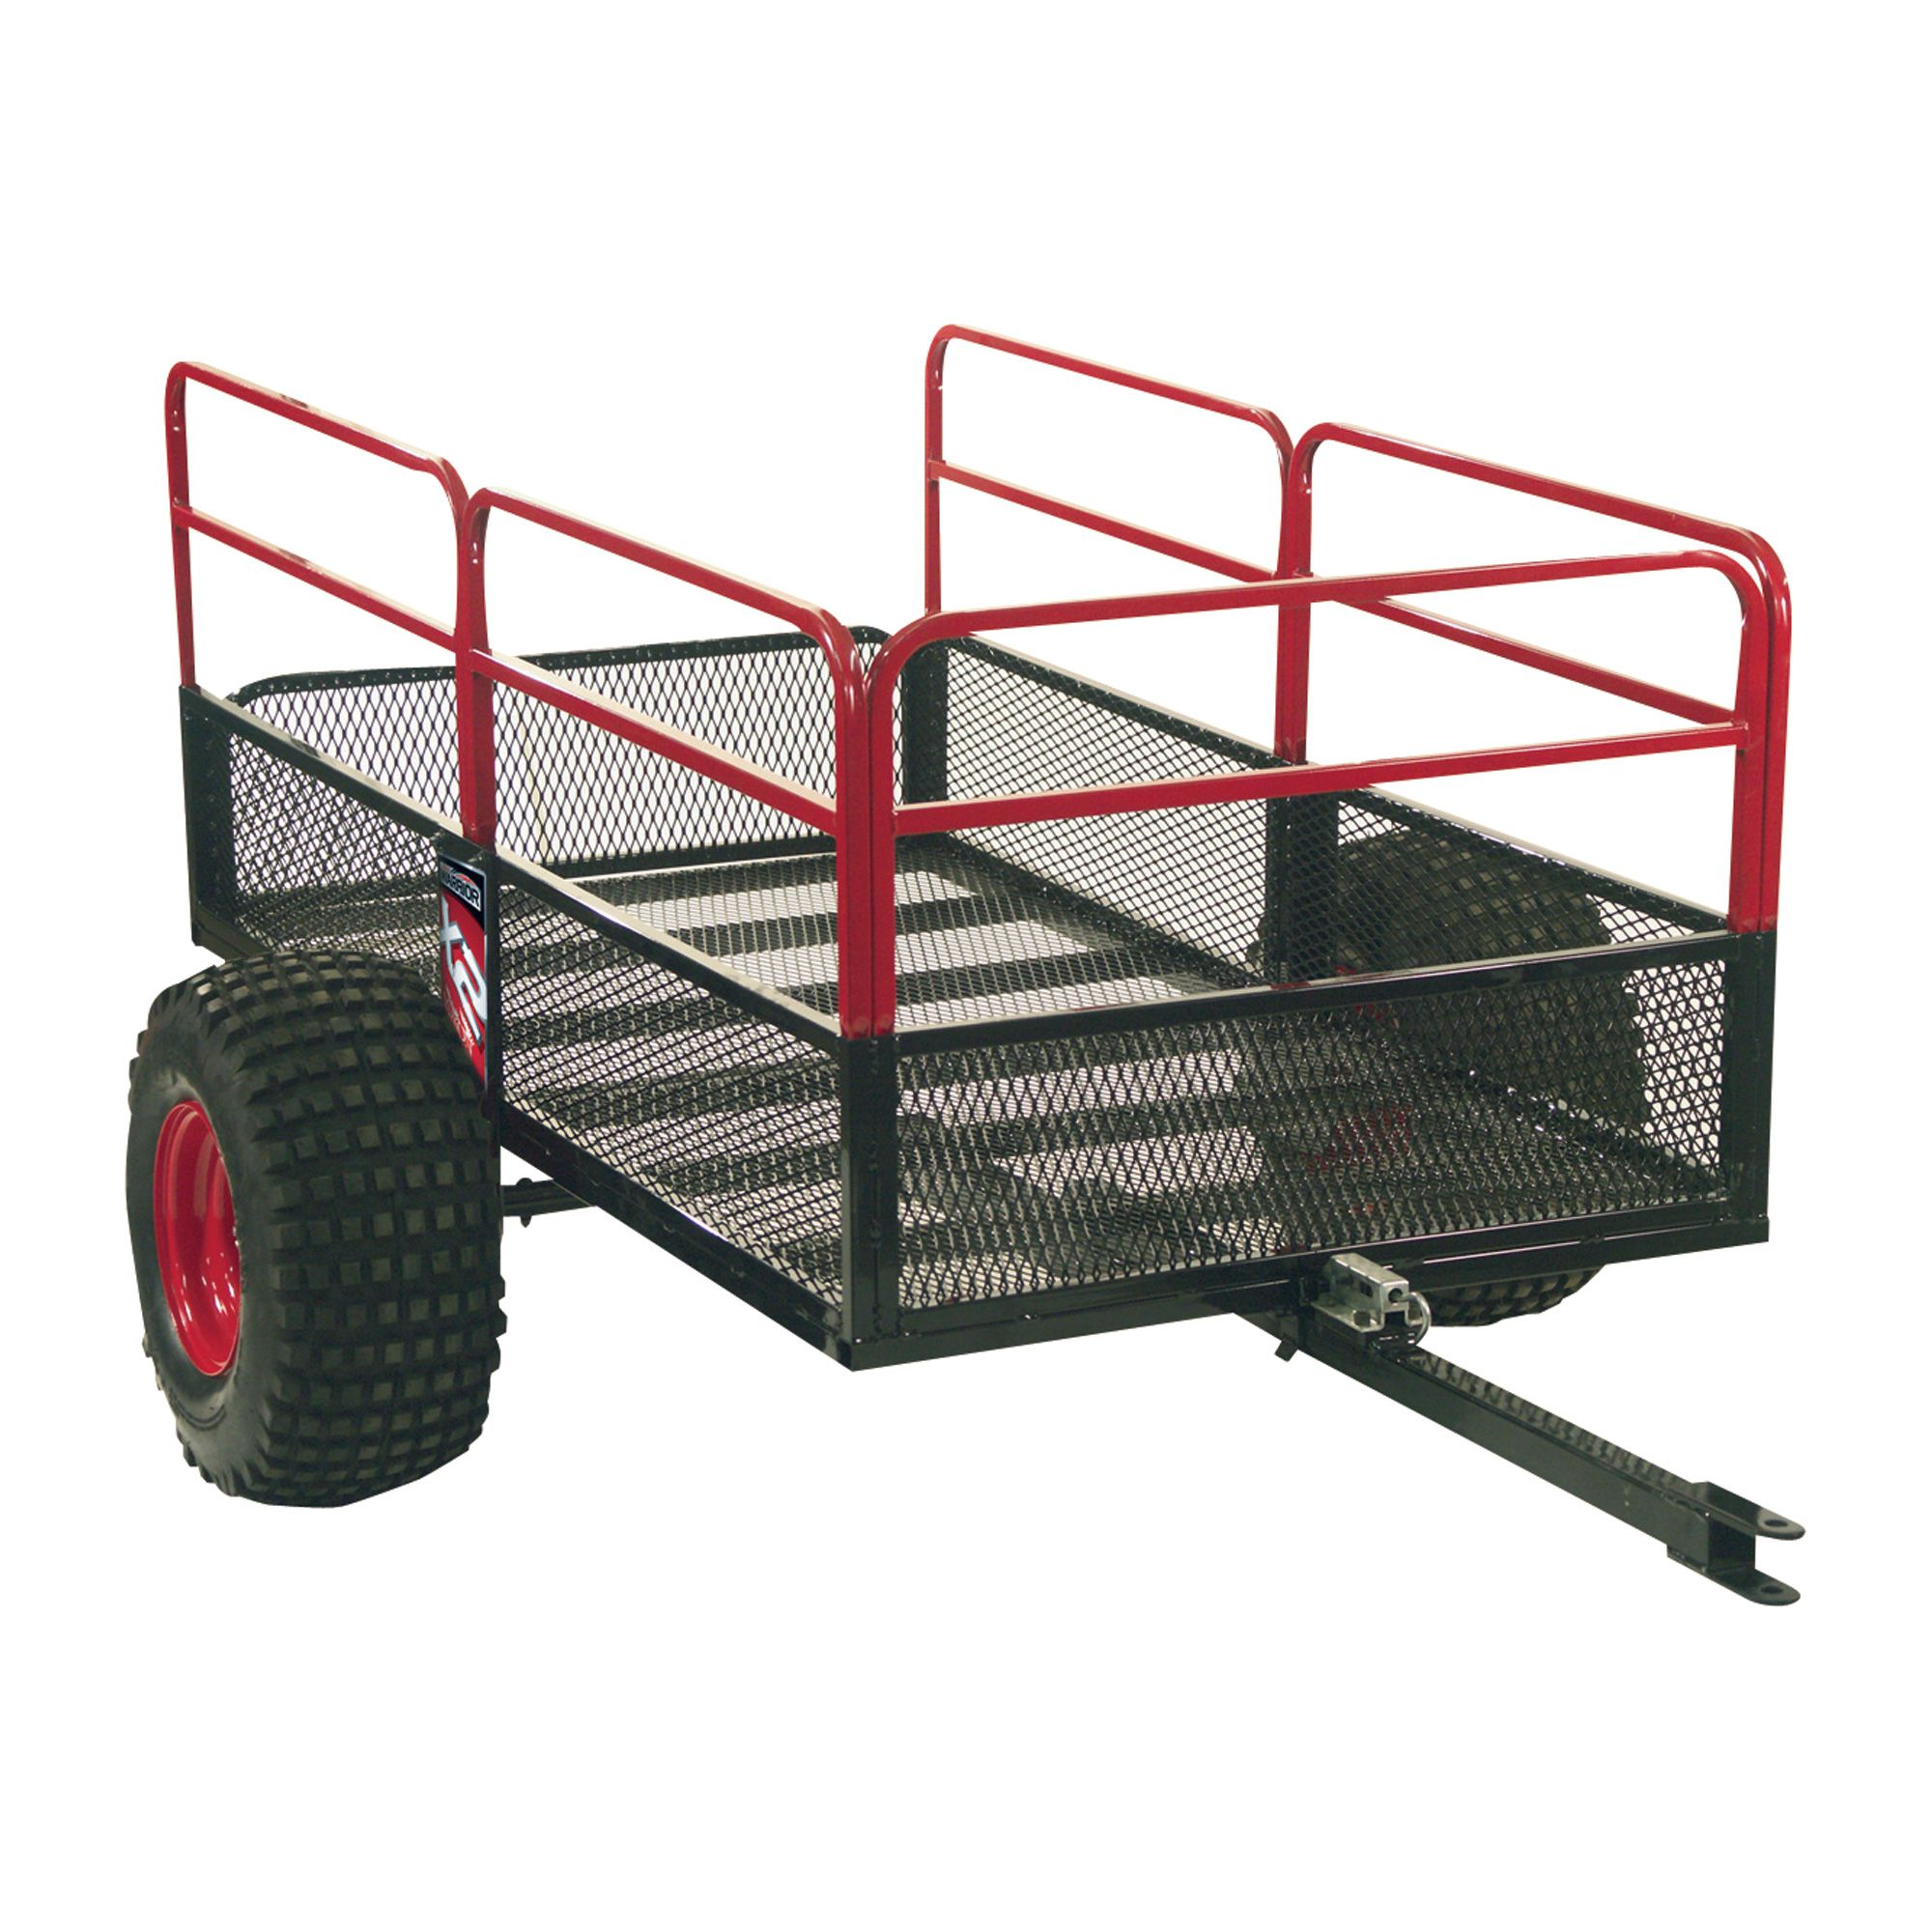 Yutrax Trail Warrior ATV Trailer — 1250Lb. Capacity, 20 1